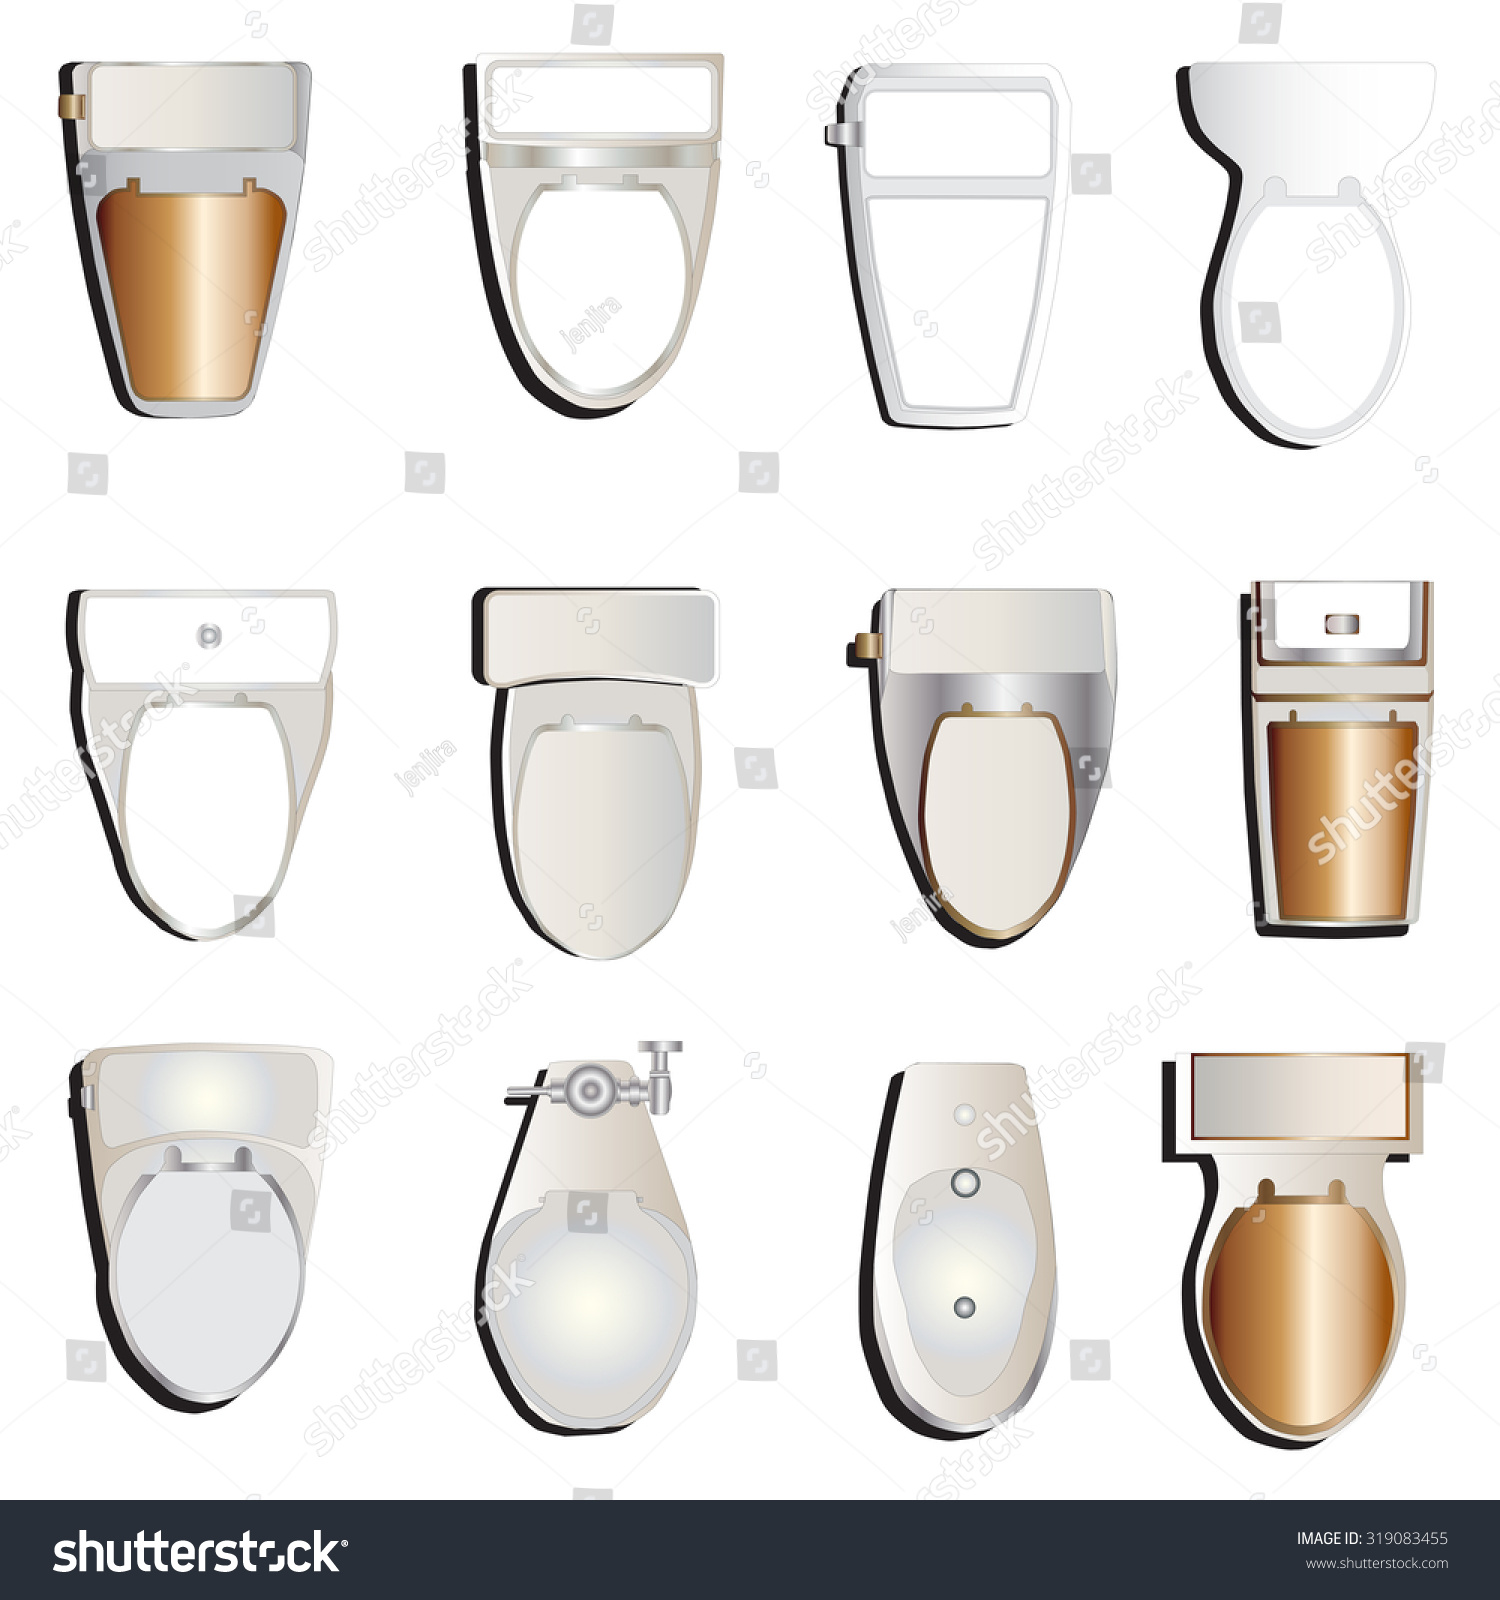 Toilet Top View Set 1 Interior Stock Vector 319083455